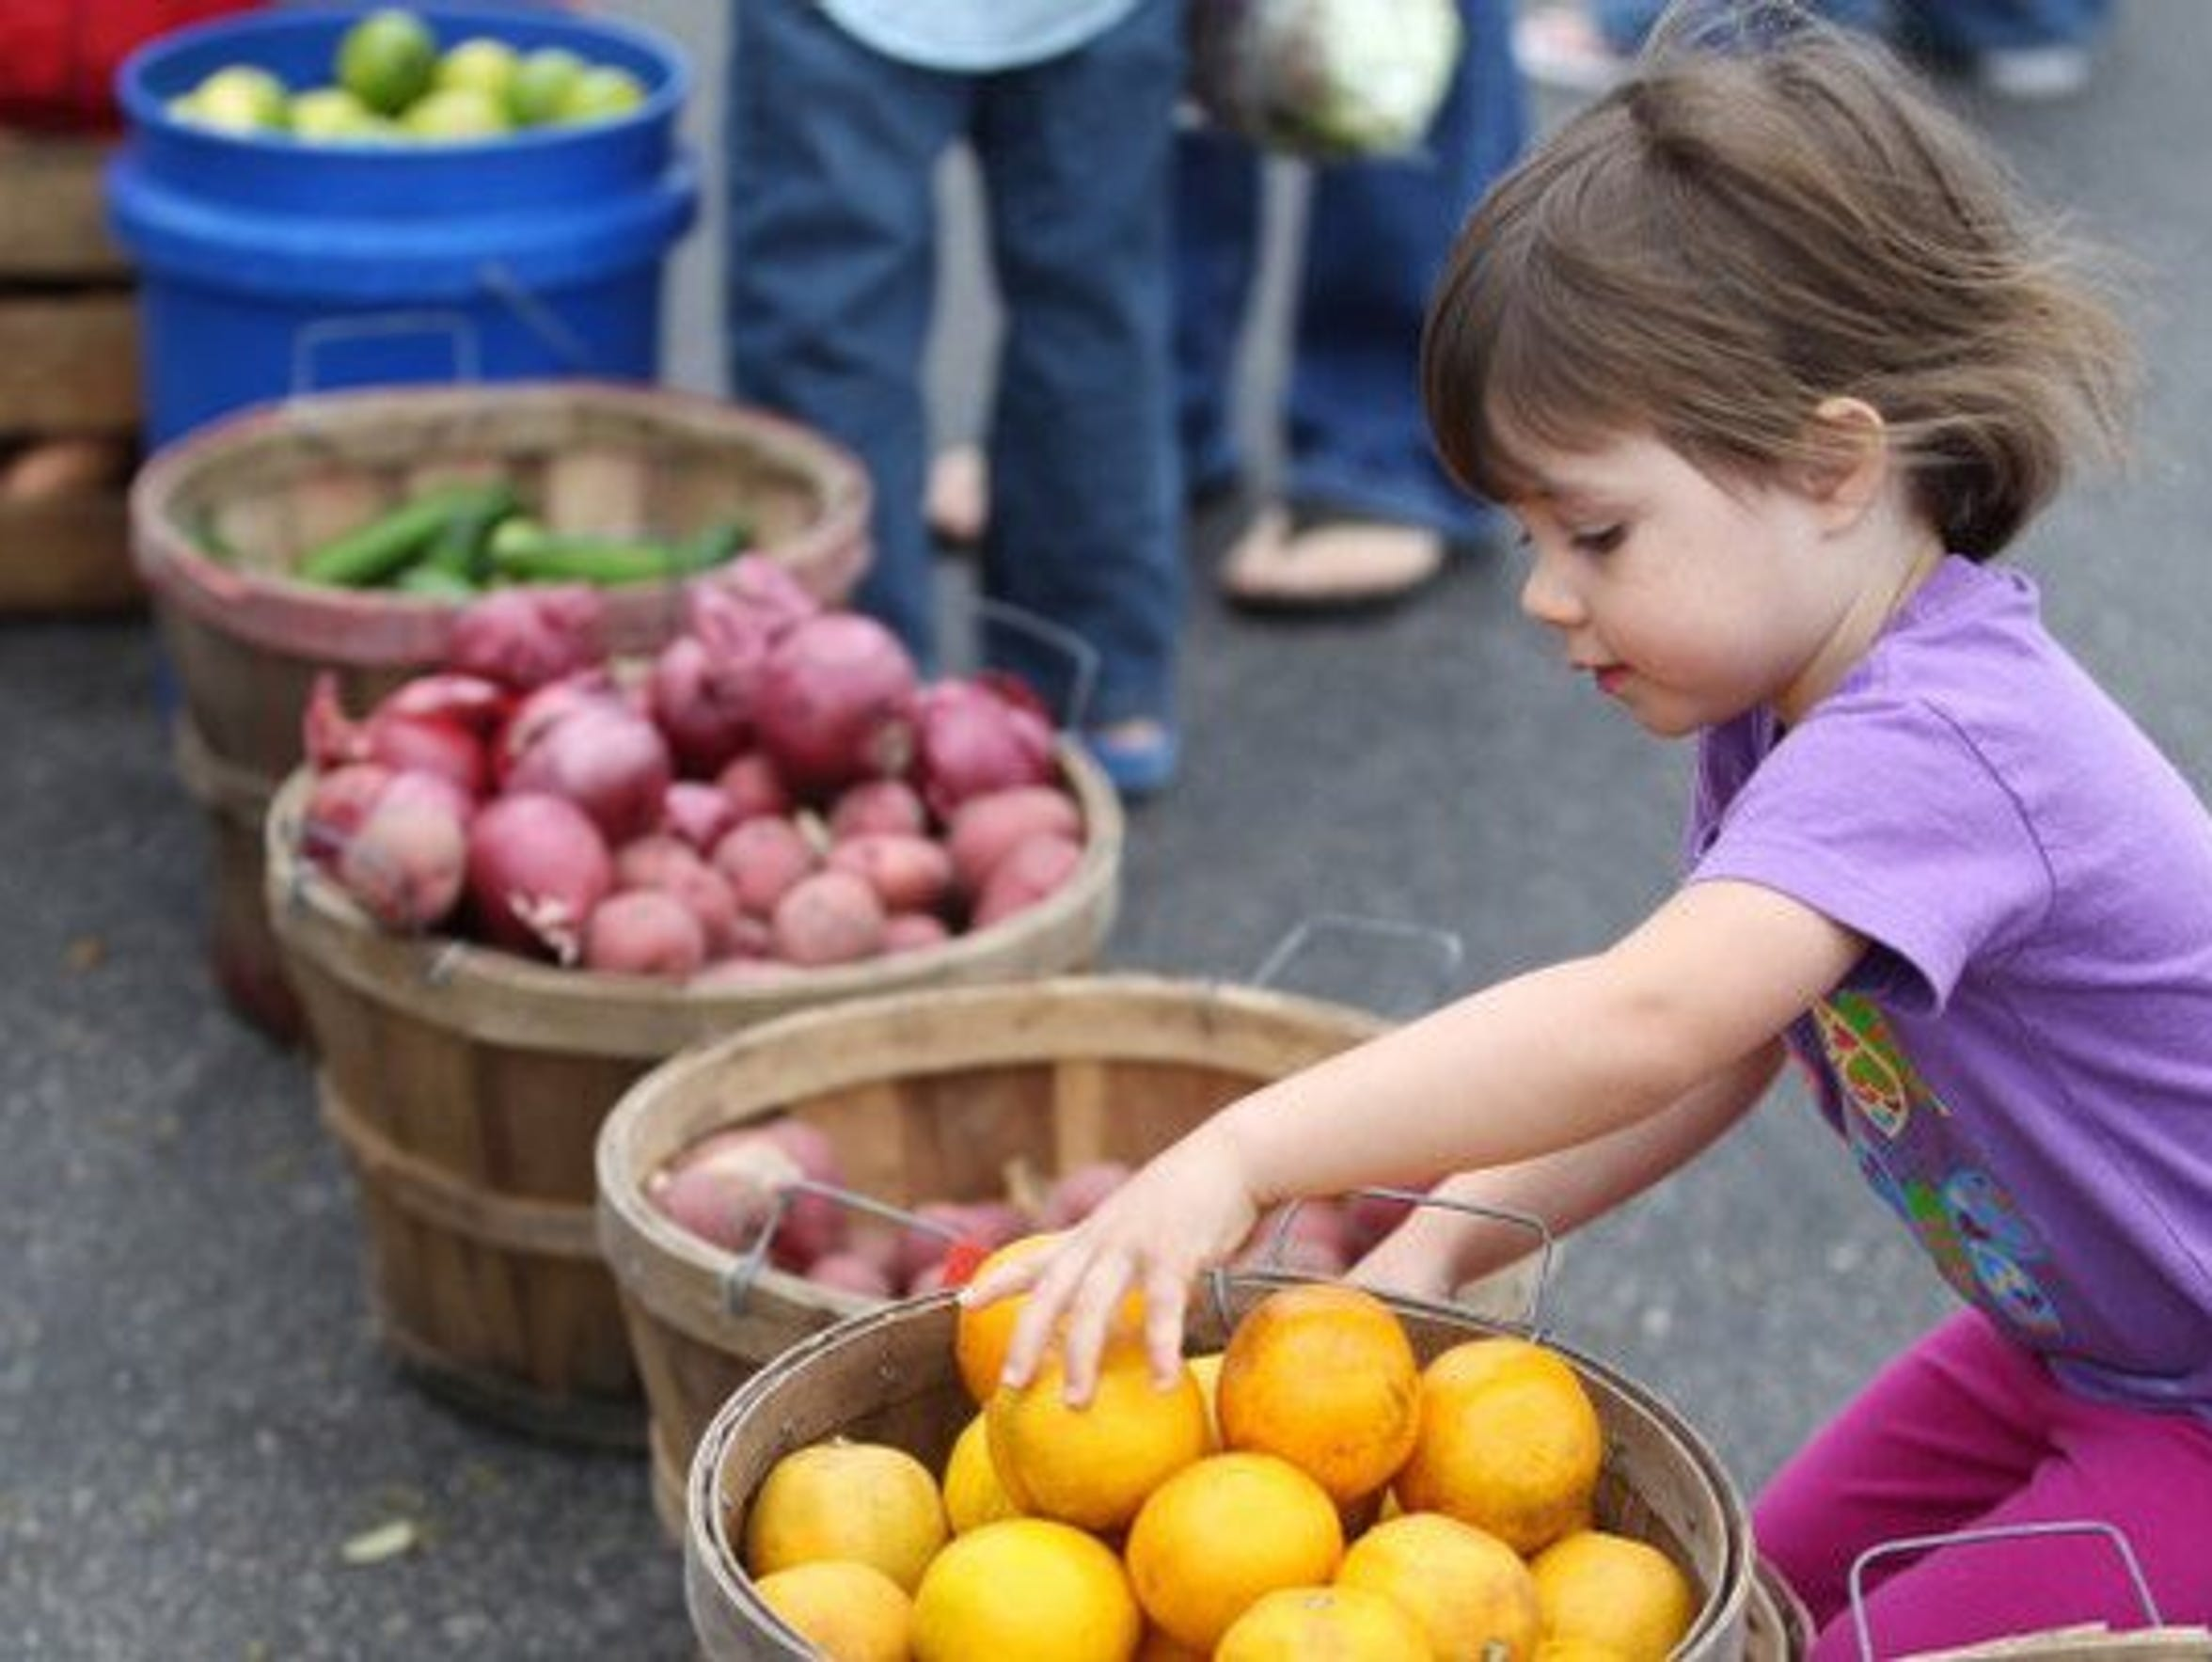 The Southside Farmer's Market is from 9 a.m. to noon